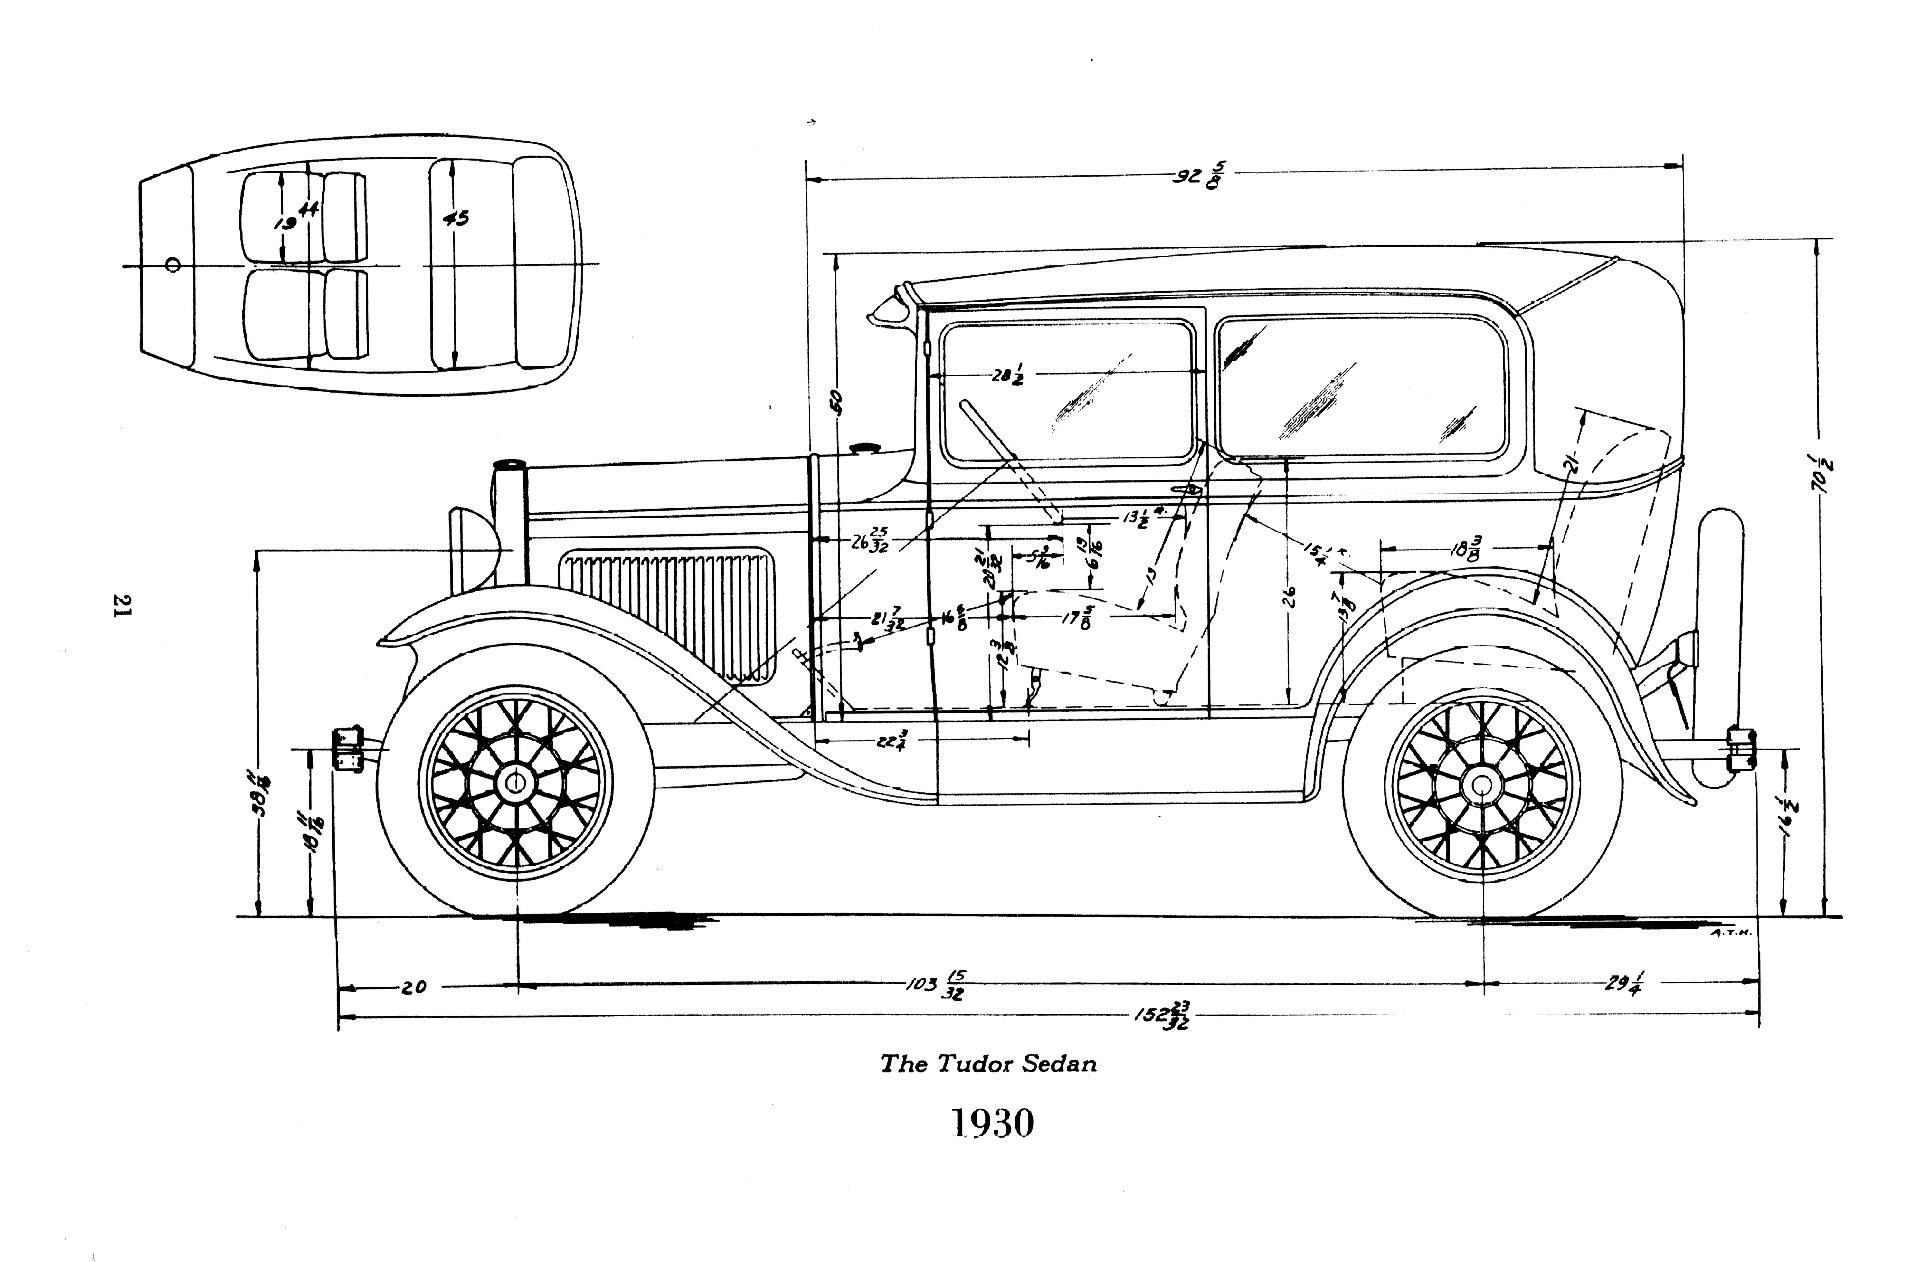 hight resolution of model a ford engine drawings ford model a body dimensions motor mayhem